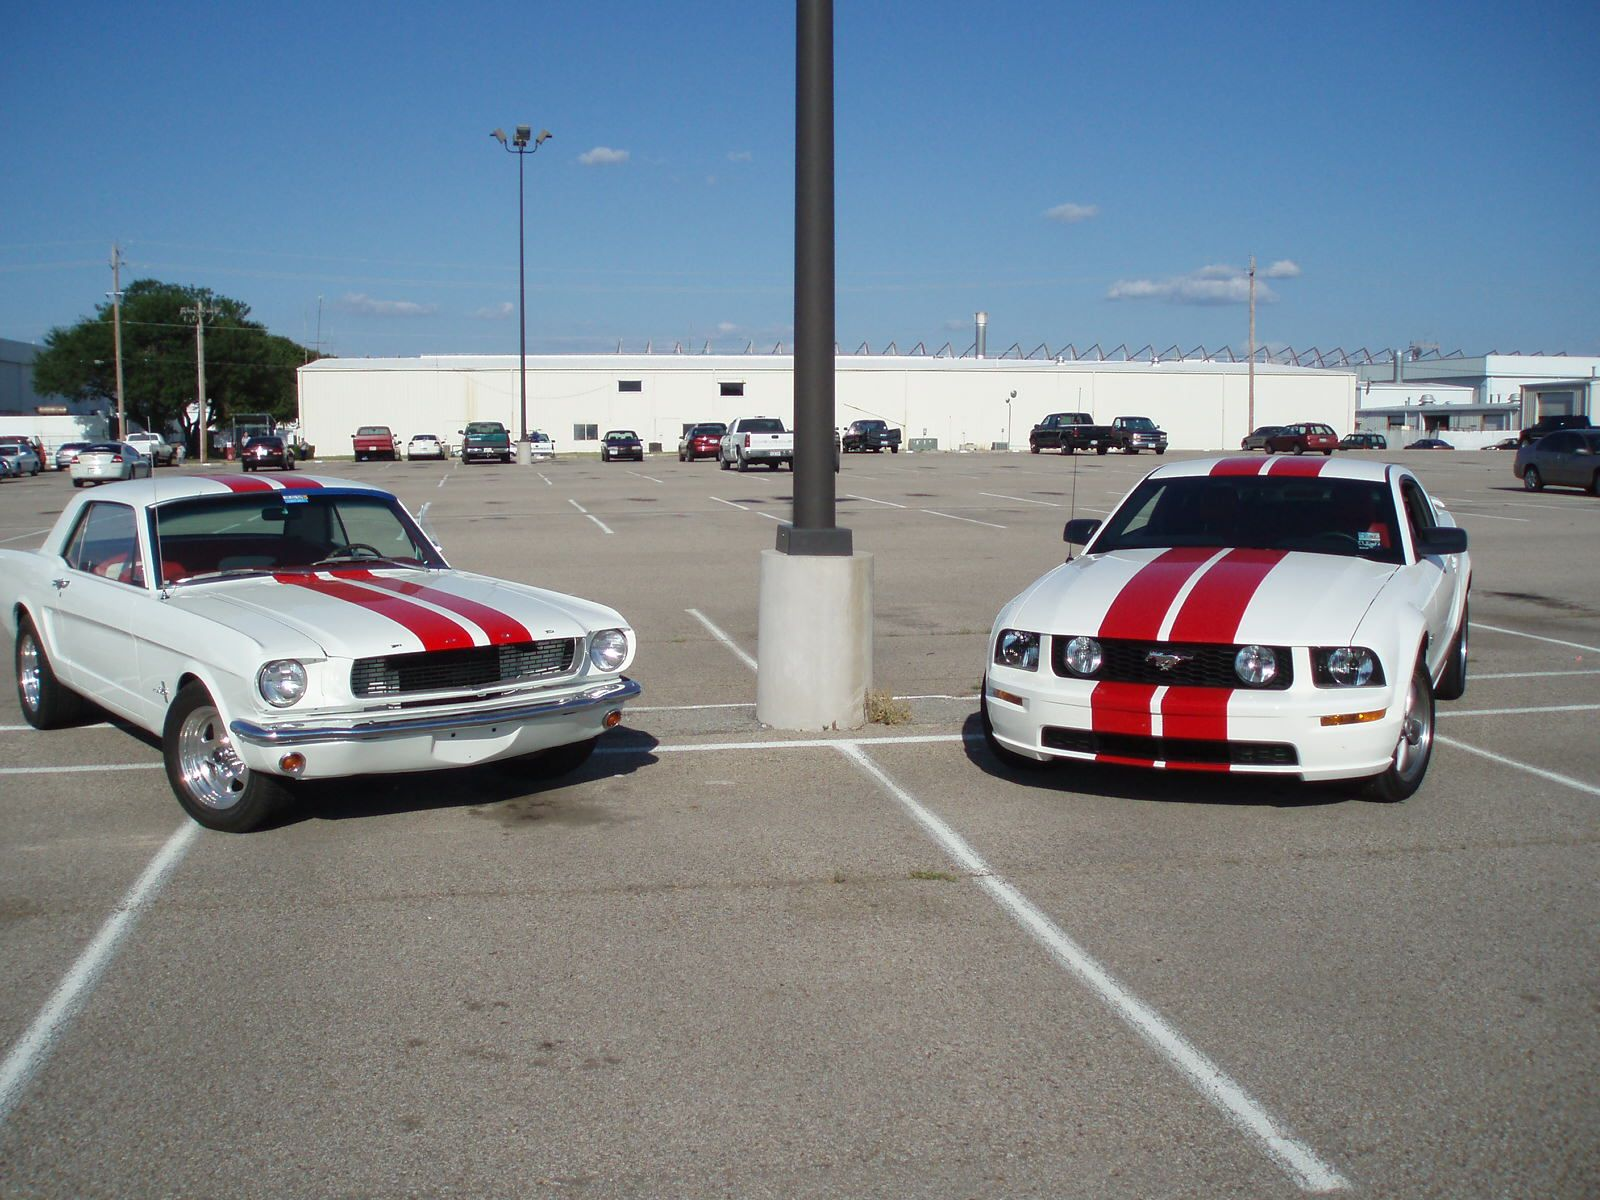 Mustang Old And New Jay Burt Yankee Dawg You Die Concept Art Mustang Old New Mustang 2010 Mustang Gt